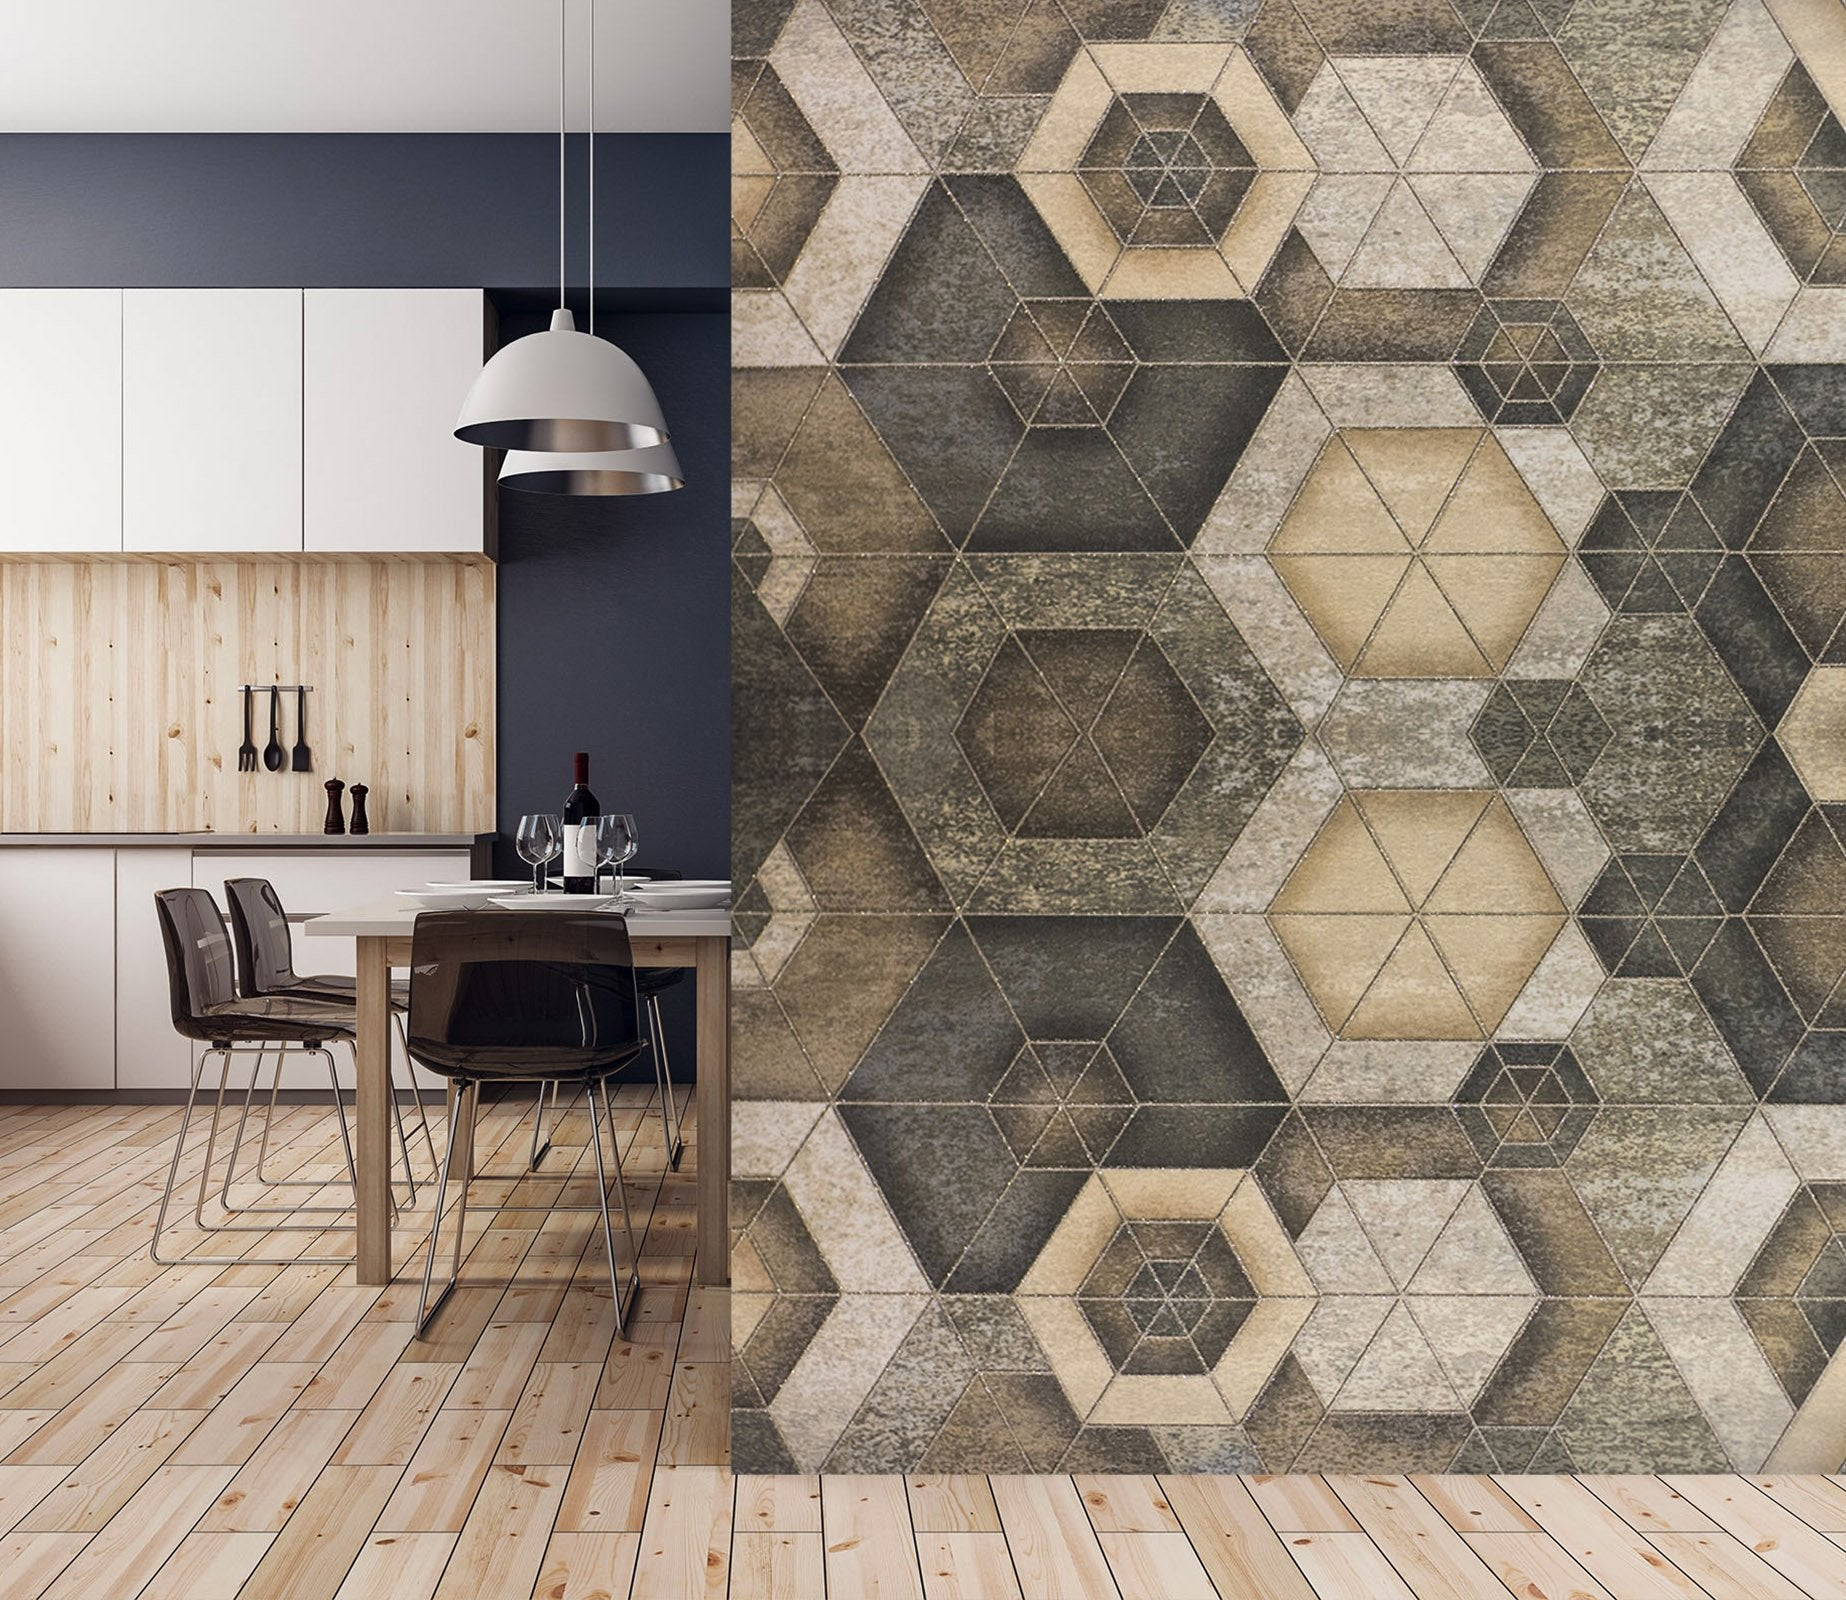 3D Hexagonal Combination 089 Marble Tile Texture Wallpaper AJ Wallpaper 2